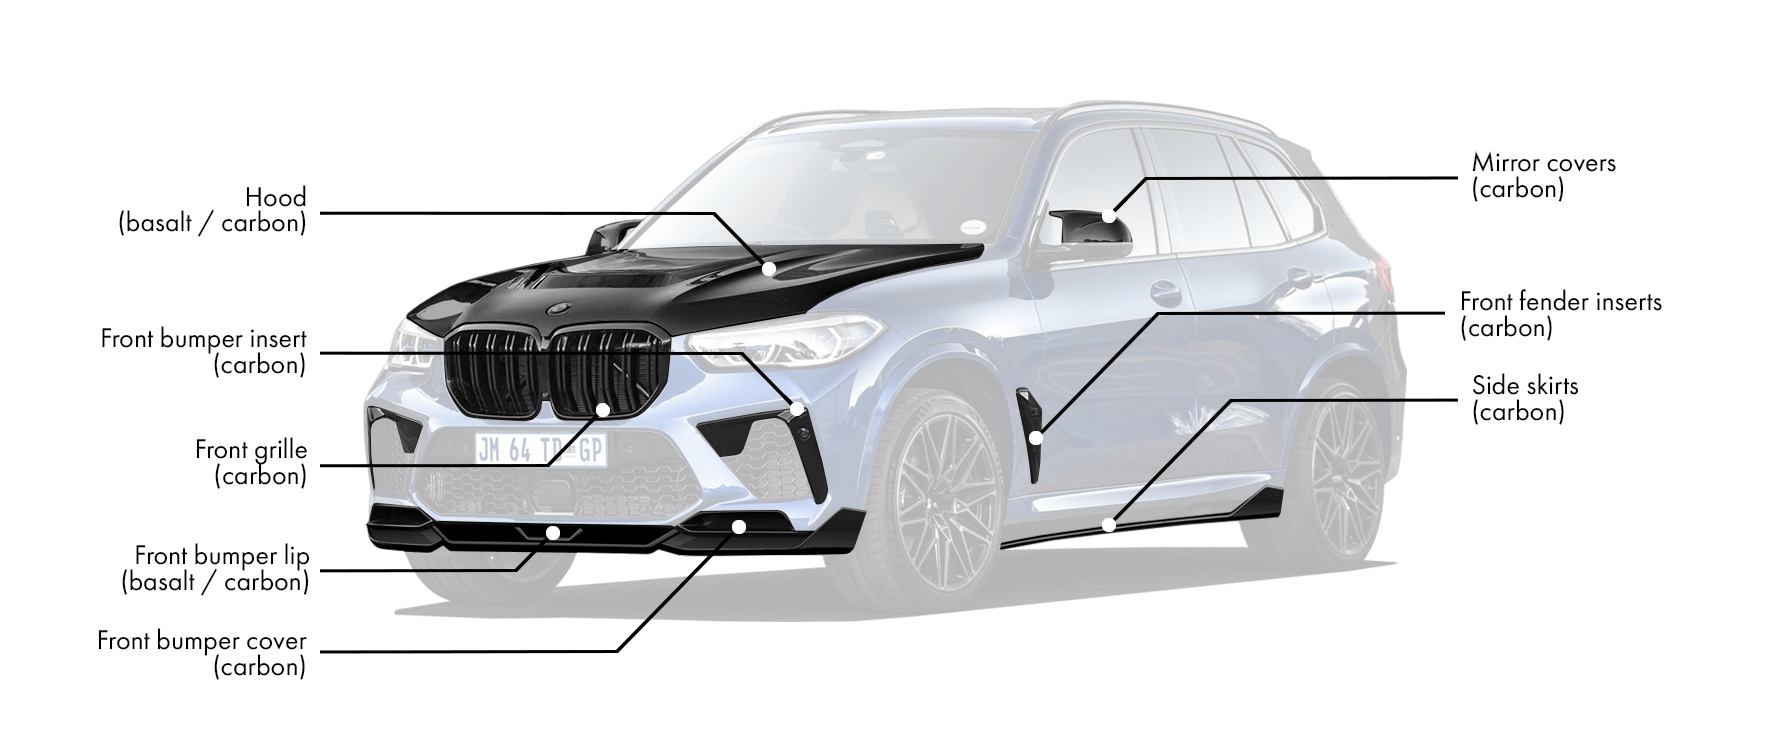 Full body kit for BMW X5 F95 includes